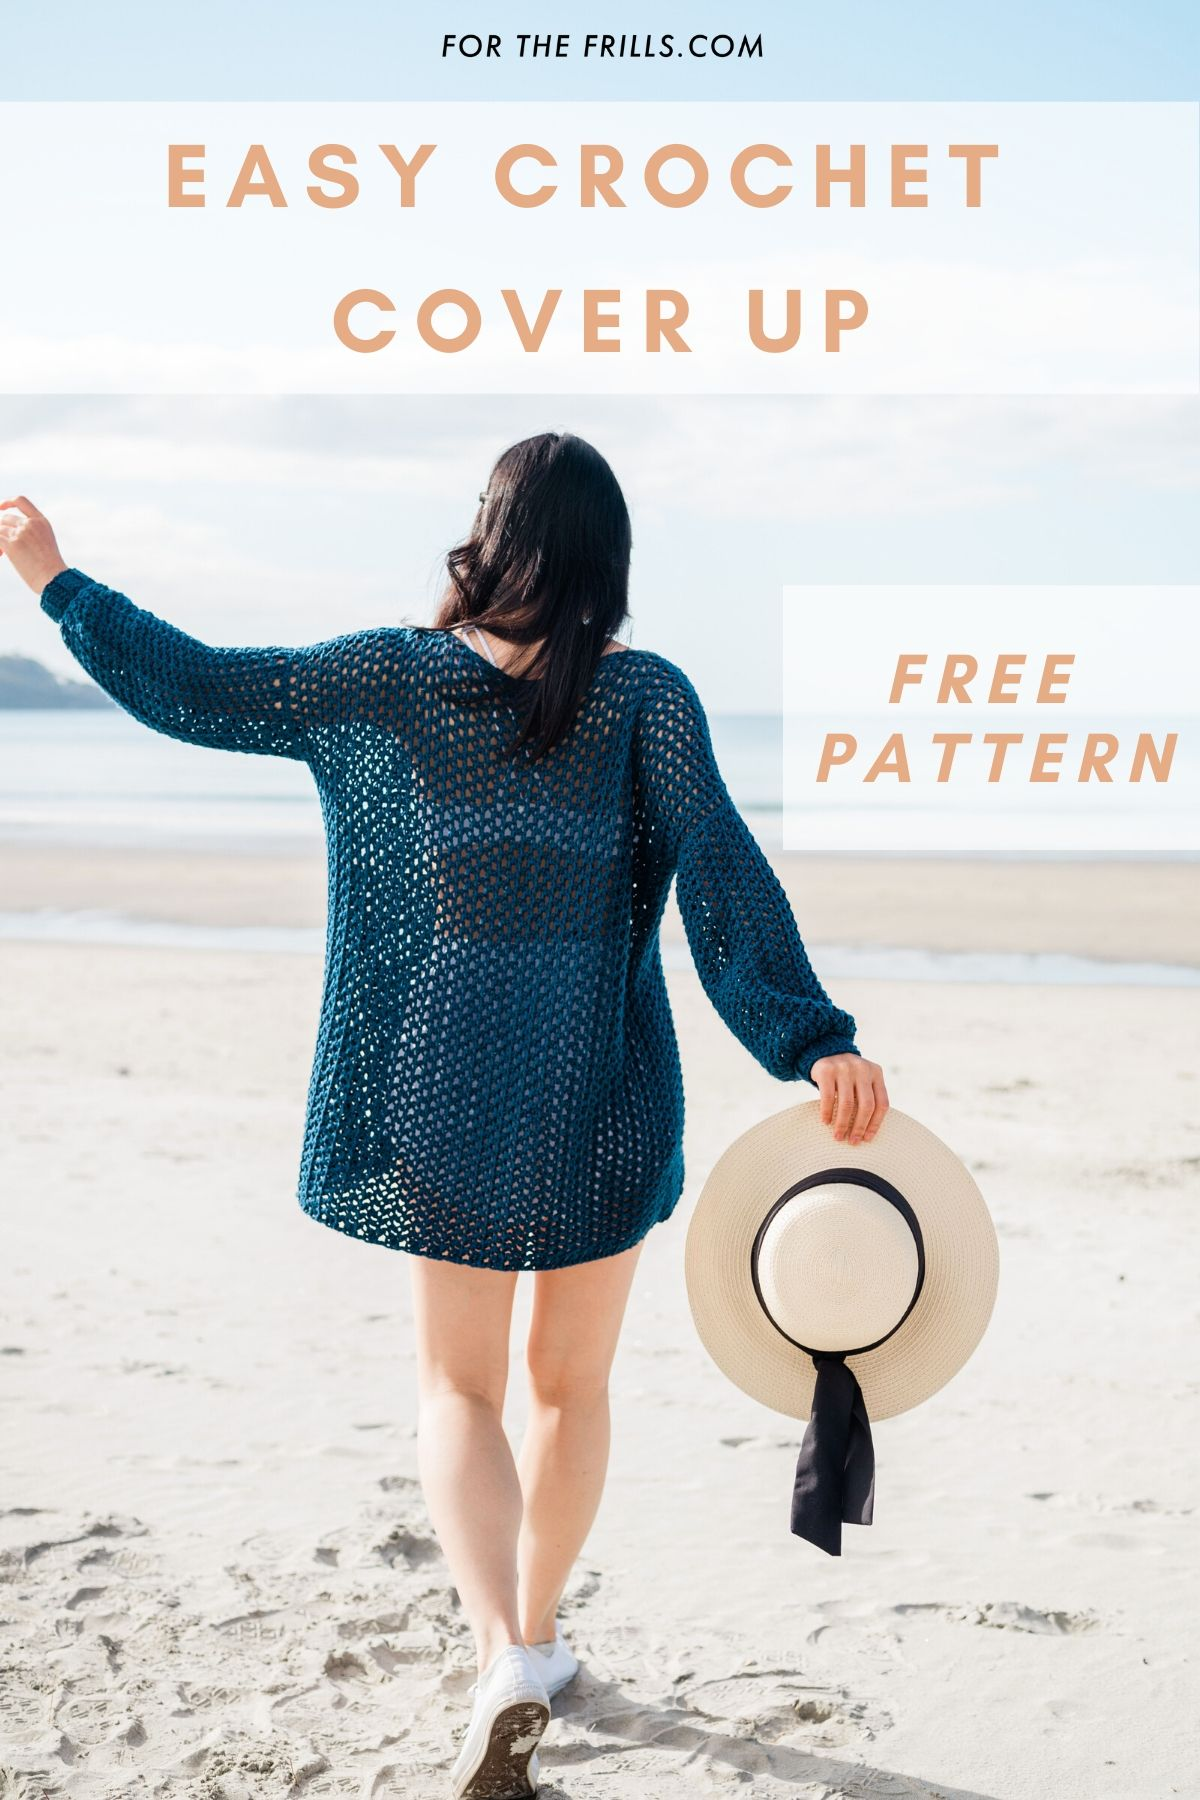 pin of free crochet cover up pattern with model walking along the beach with a straw hat and white sneakers